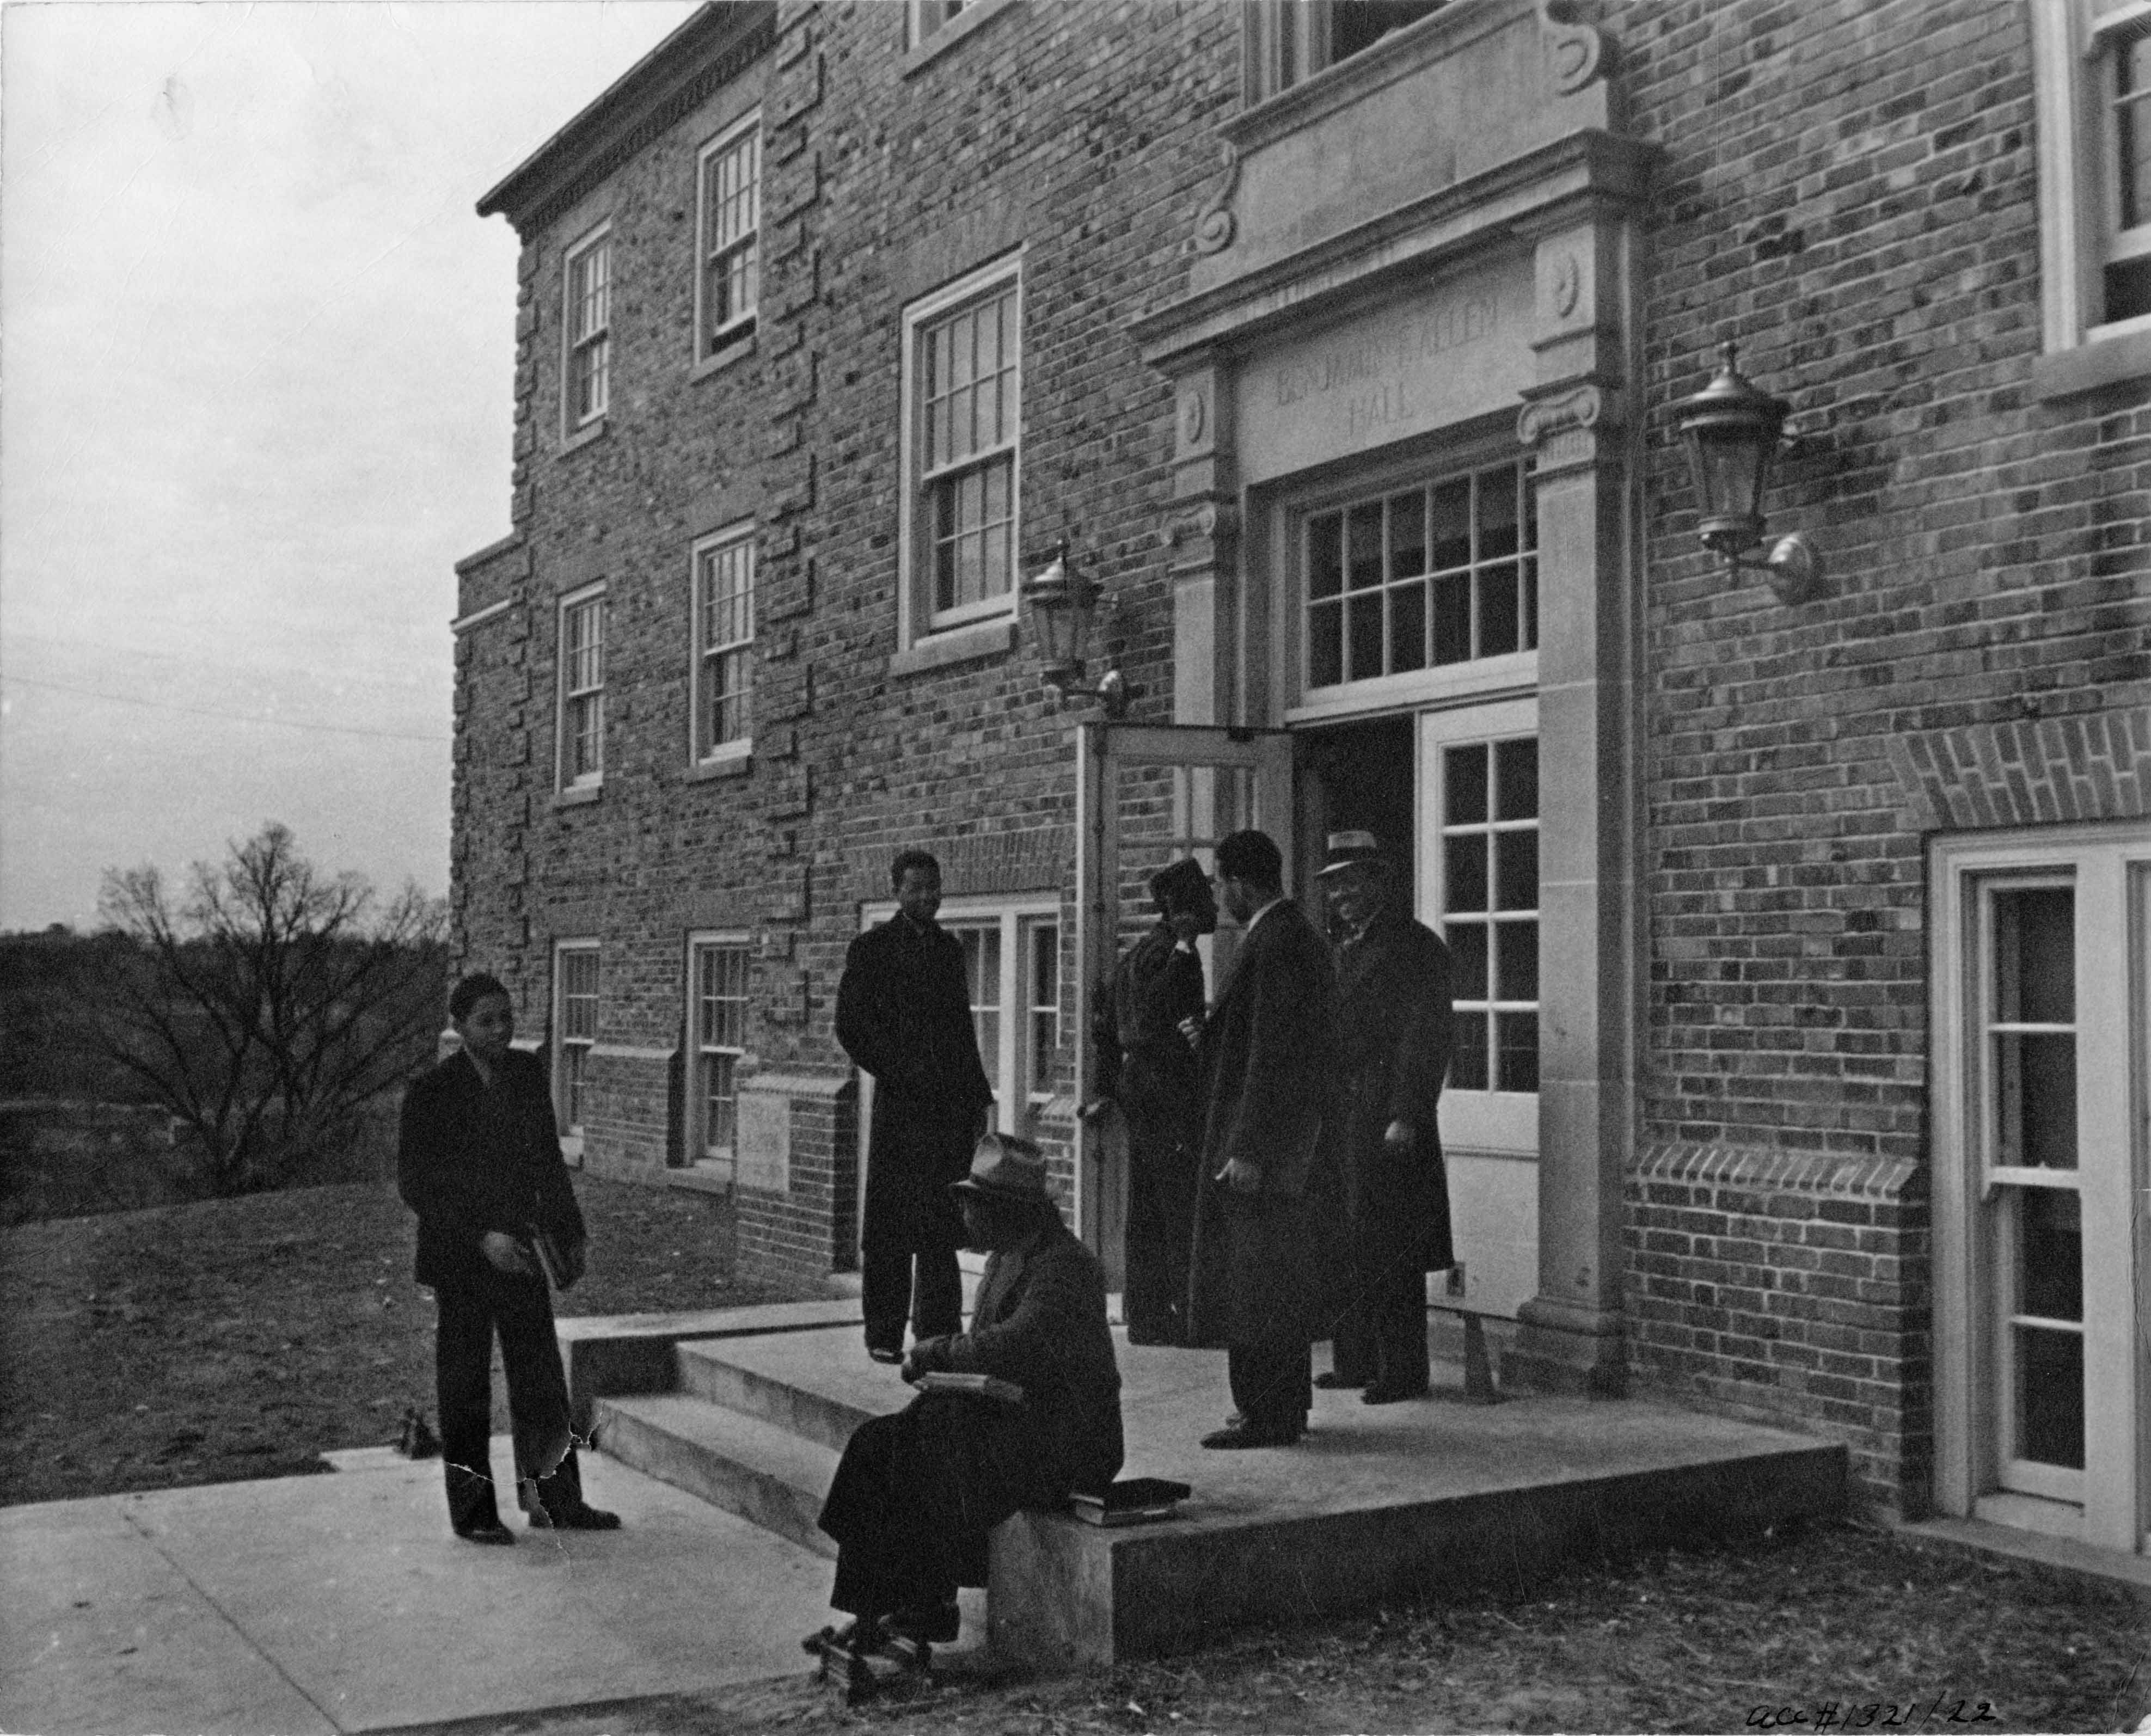 Students gathered outside Benjamin Allen Hall at Lincoln University, c. 1937